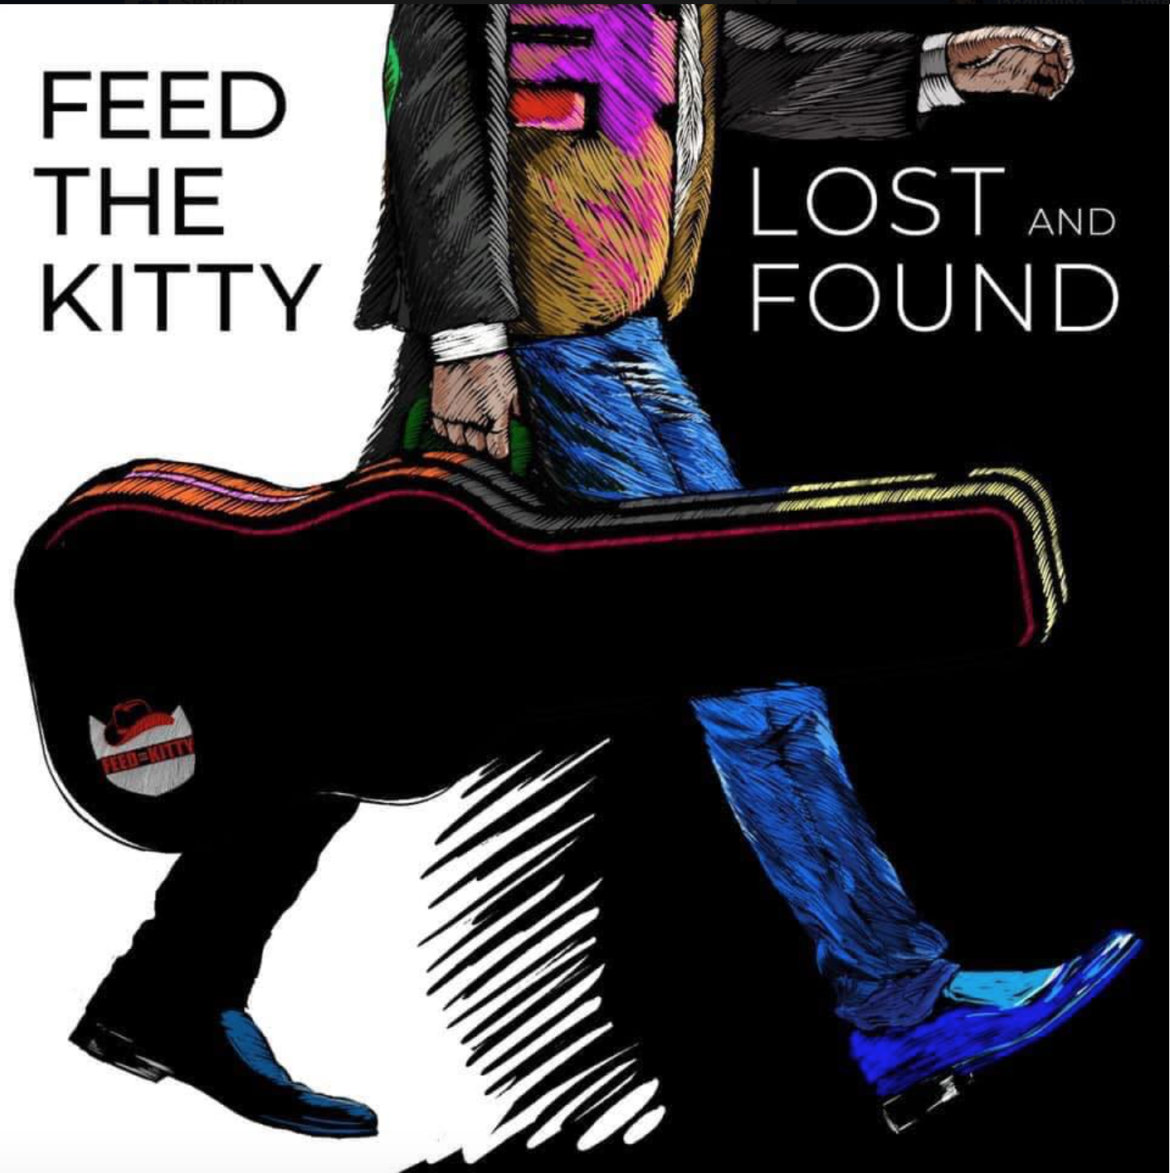 California Band Feed The Kitty Enters into a New Era of Music